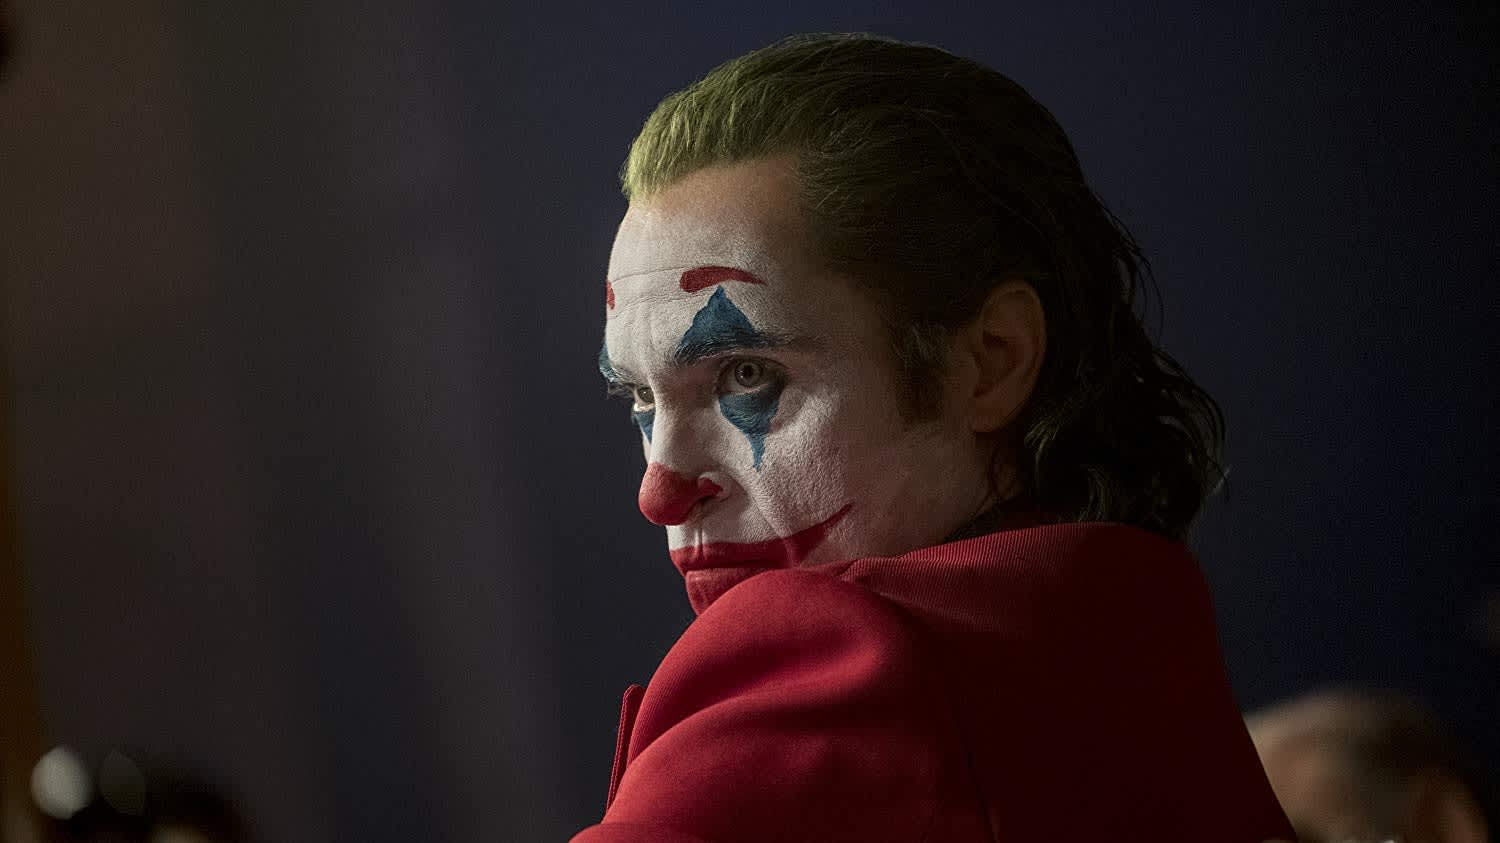 Two US movie theater chains ban masks at screenings of 'Joker'